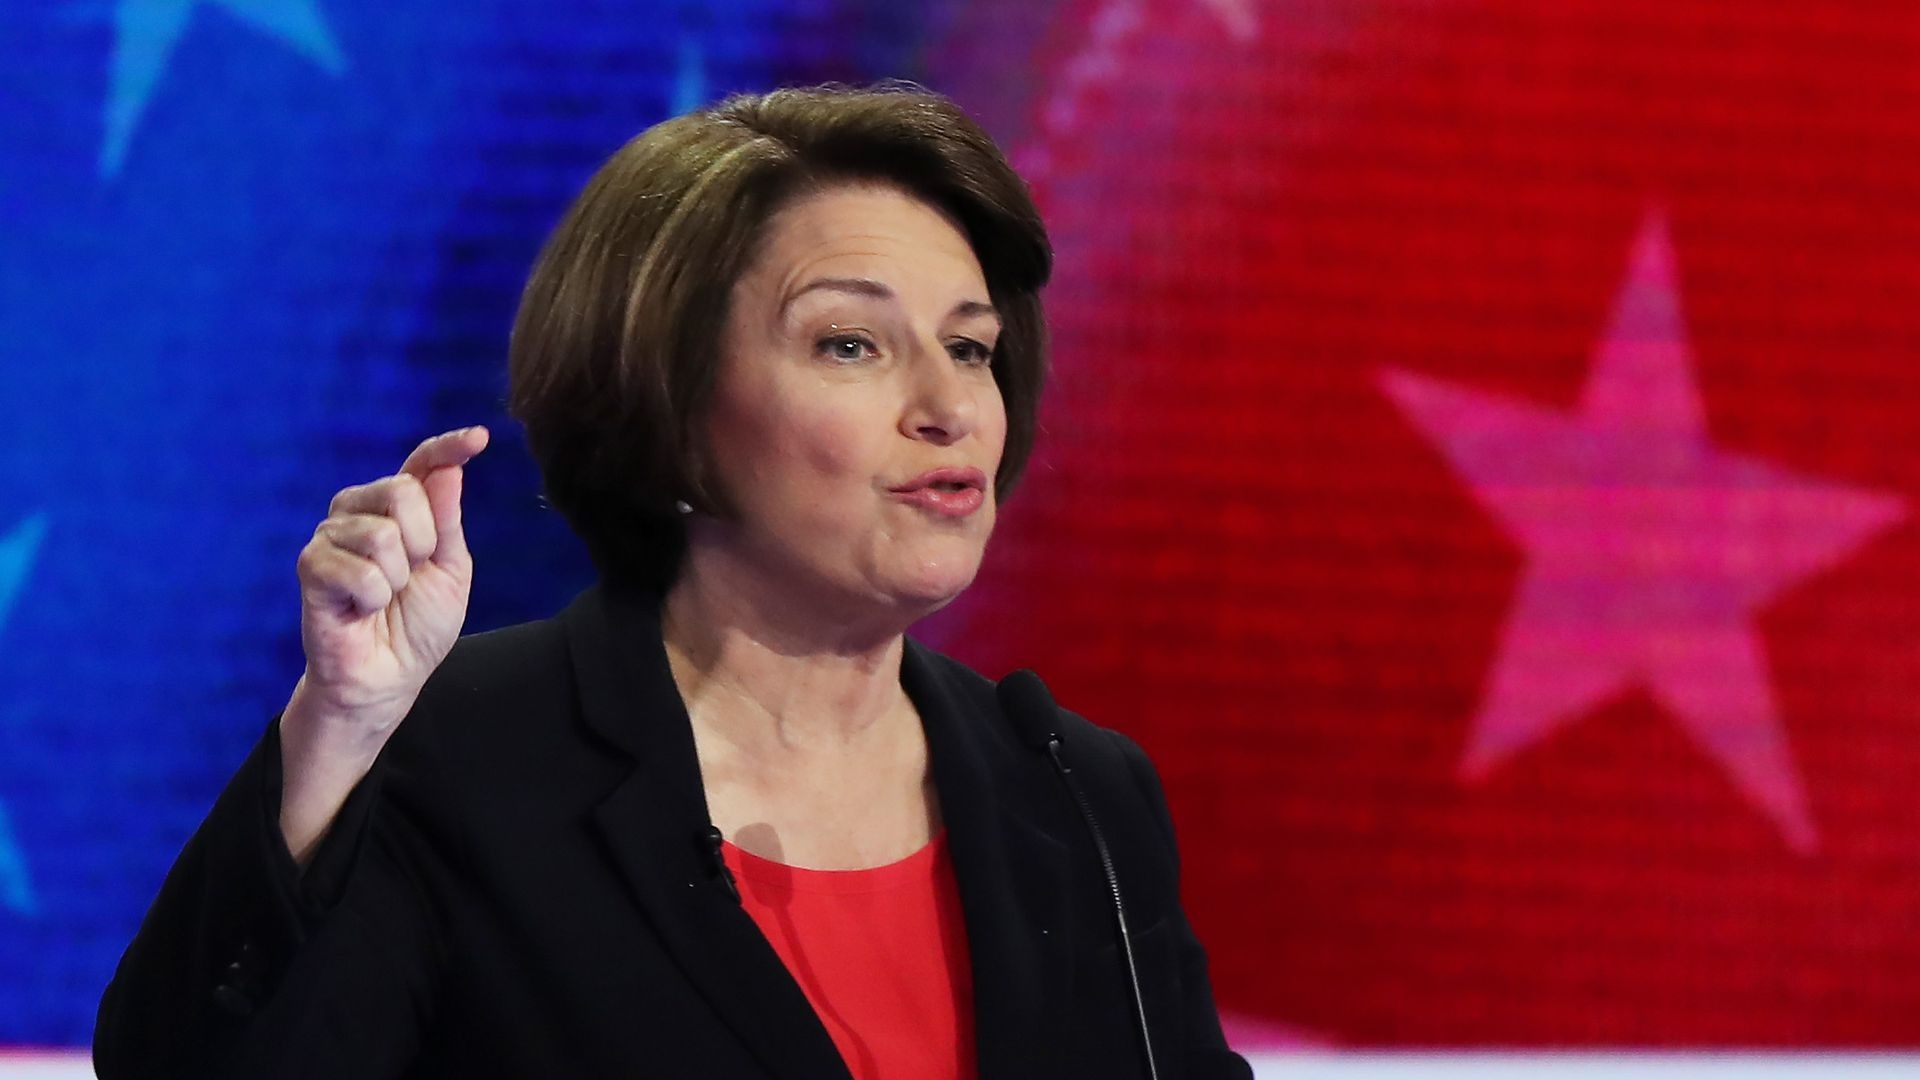 Amy Klobuchar on the issues, in under 500 words